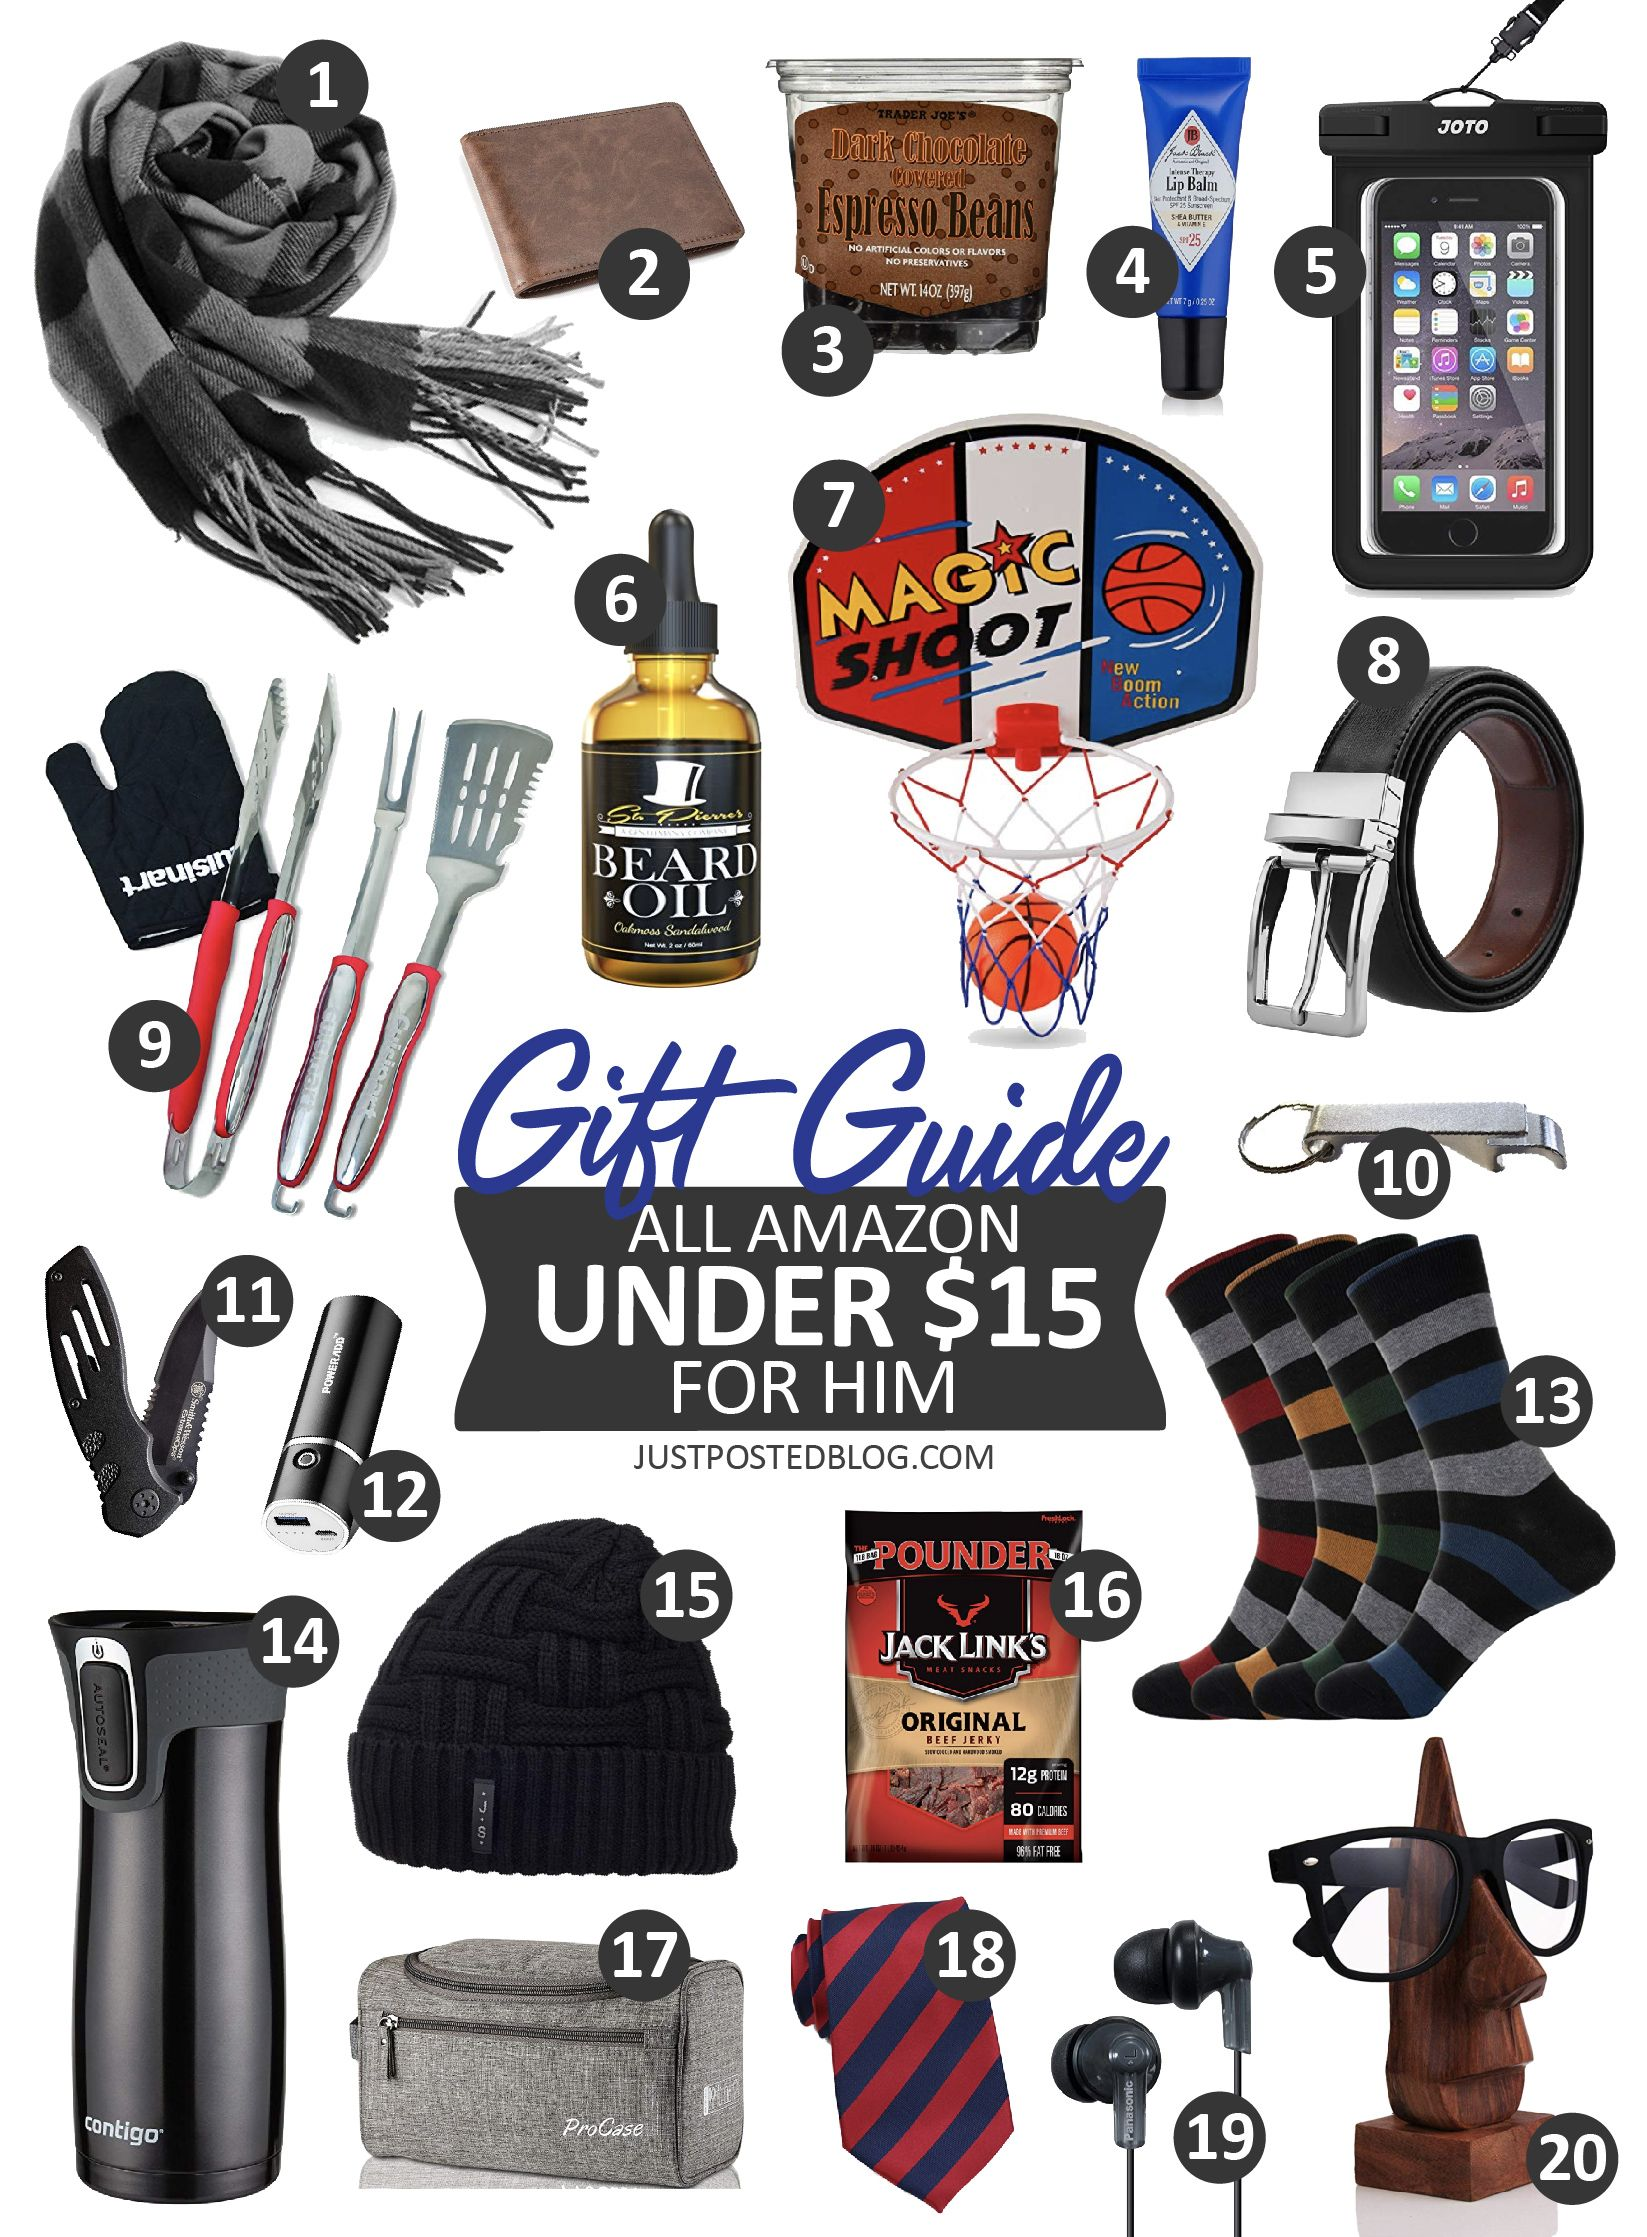 Amazon Stocking Stuffer Gift Guide for Him - All under $15!